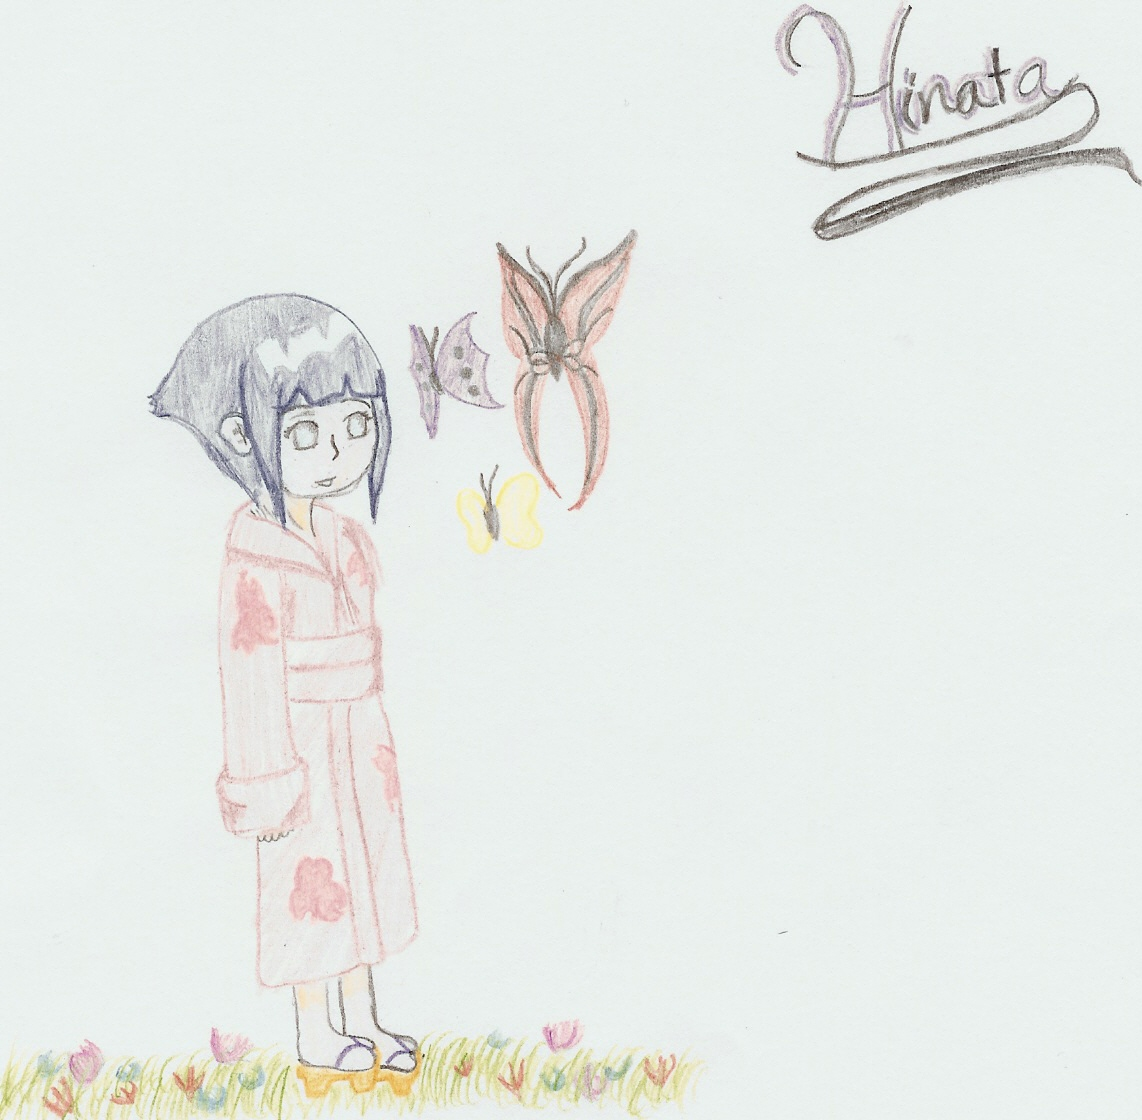 Hinata in a Feild of Butterflies by 1mangalover